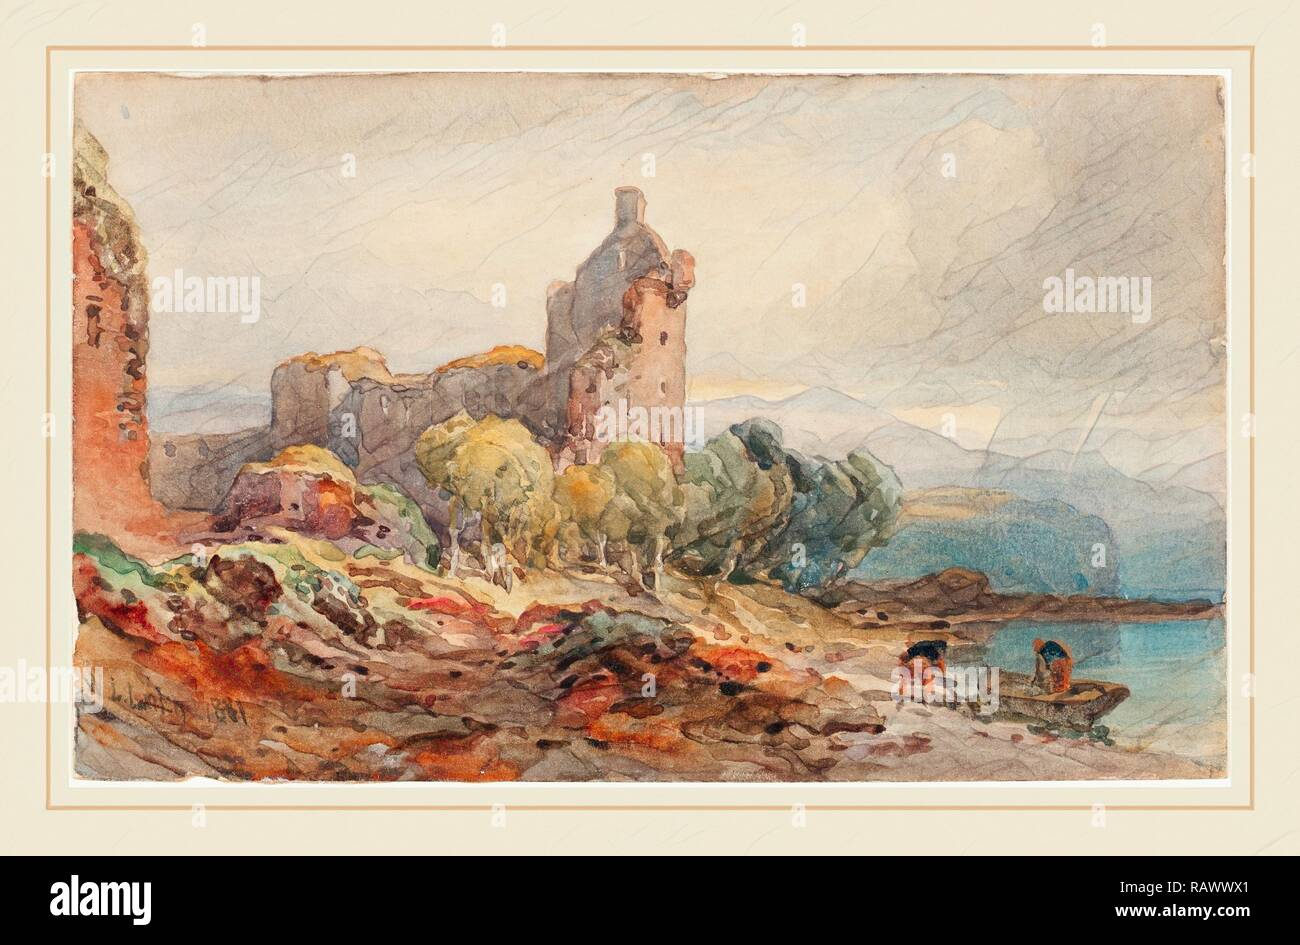 William Leighton Leitch, British (1804-1883), A Ruined Castle on a Lake, 1881, watercolor over graphite on wove paper reimagined - Stock Image